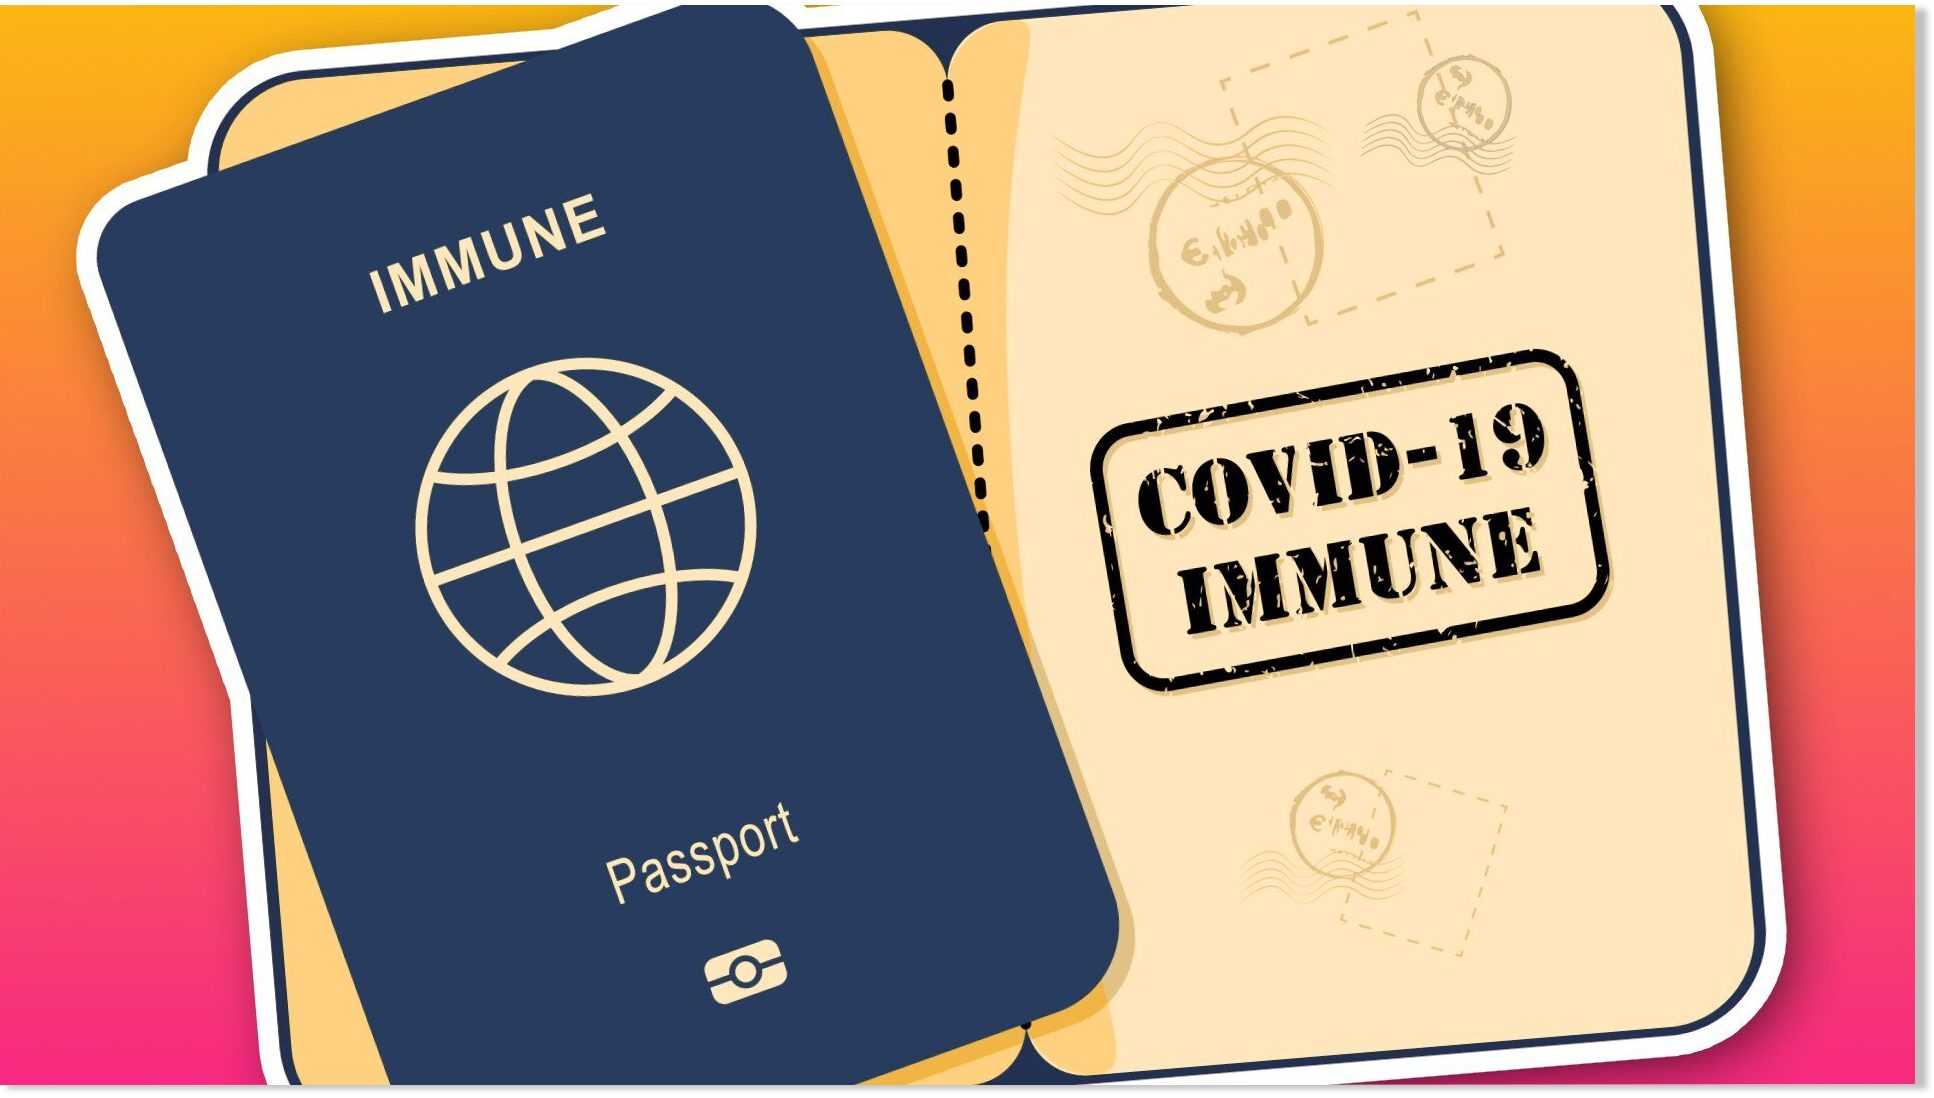 Apps now being developed for global vaccine passport help fulfill 'one world order' totalitarian agenda